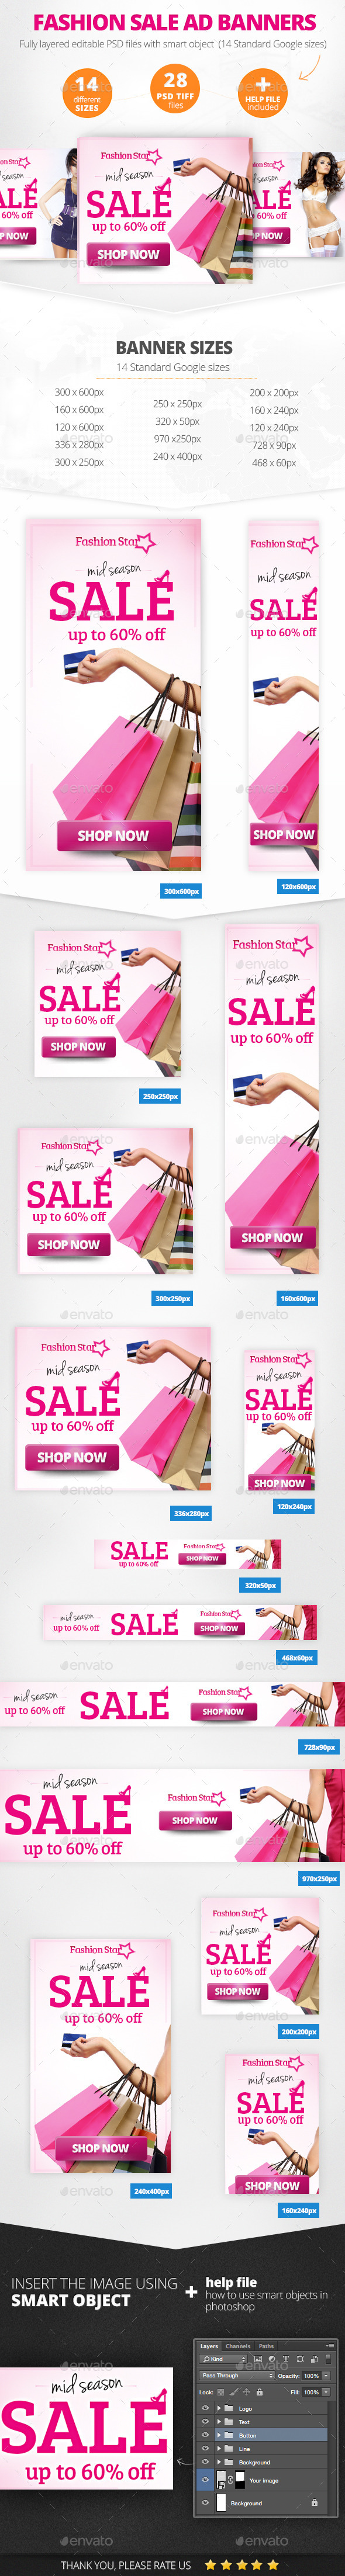 GraphicRiver Fashion Sale Ad Banners 11147522